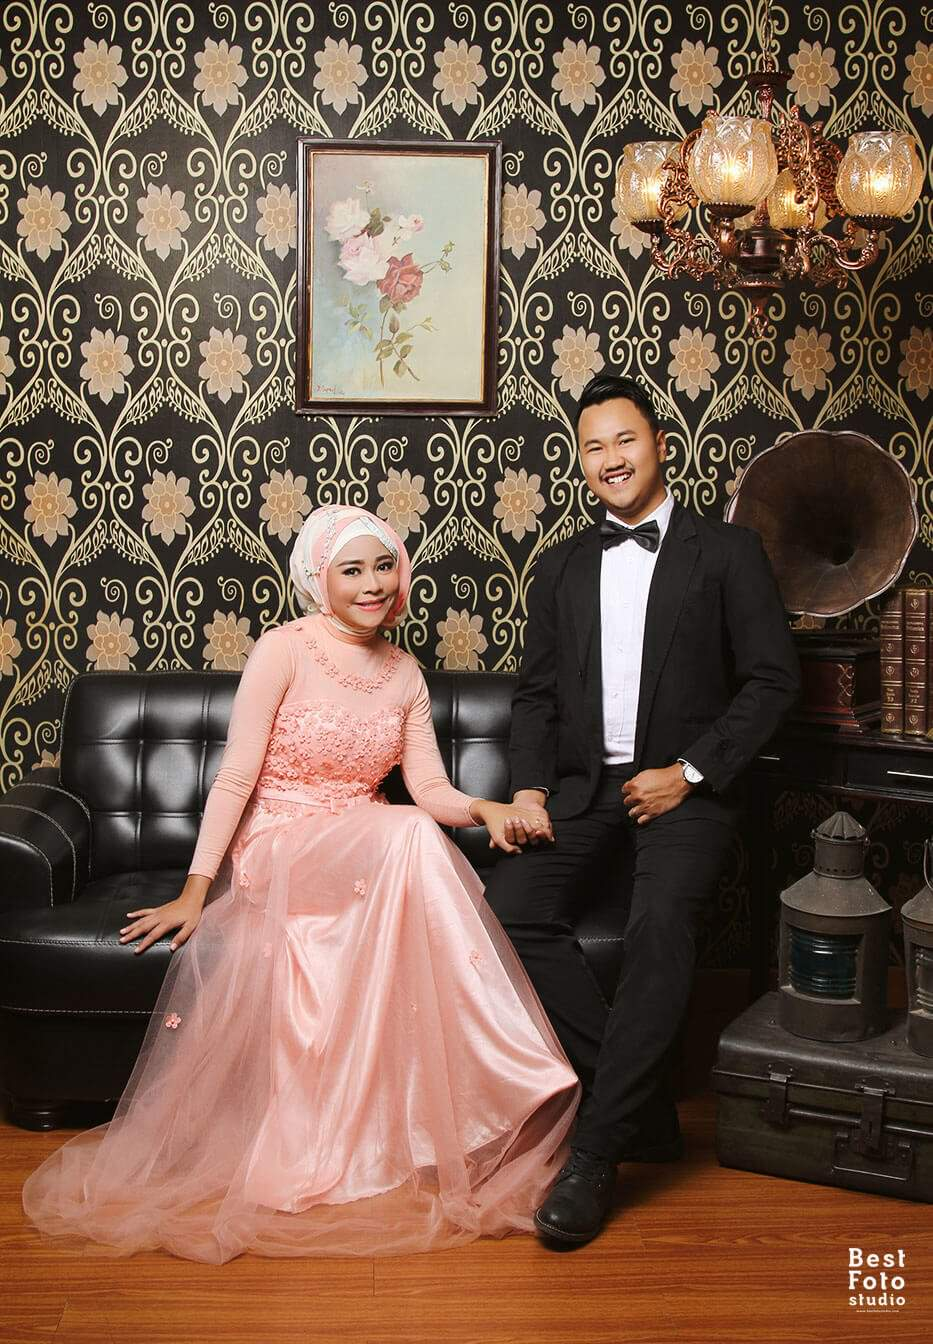 Romantis Indoor Prewedding for Puput and Fadli by BEST FOTO STUDIO 003